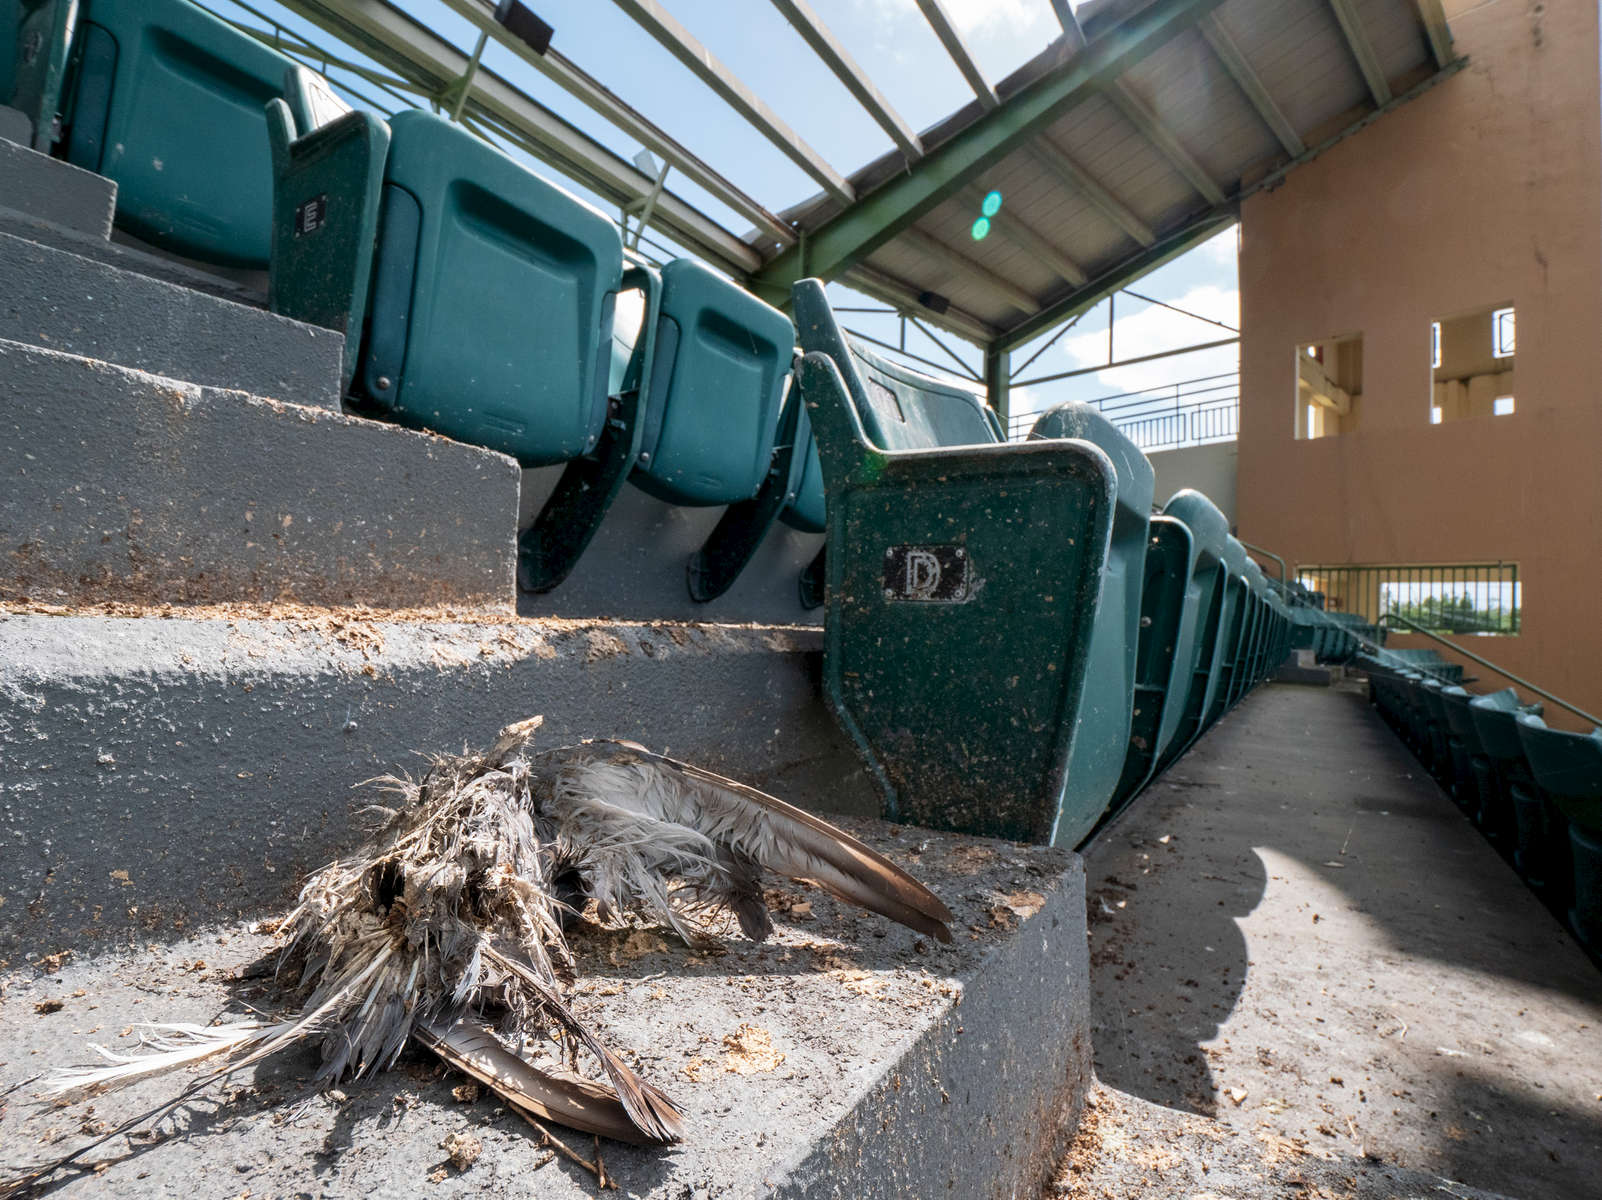 CAROLINA, PUERTO RICO - NOVEMBER 12:   A view of seats with bird droppings and a dead bird at Roberto Clemente Stadium on November 12, 2018 in Carolina, Puerto Rico. The seats remain empty due to the the damage sustained by Hurricane Maria. on November 12, 2018 in Carolina, Puerto Rico. The effort continues in Puerto Rico to remain and rebuild more than one year after the Hurricane Maria hit and devastated the island on September 20, 2017. The official number of deaths from the disaster is 2,975.